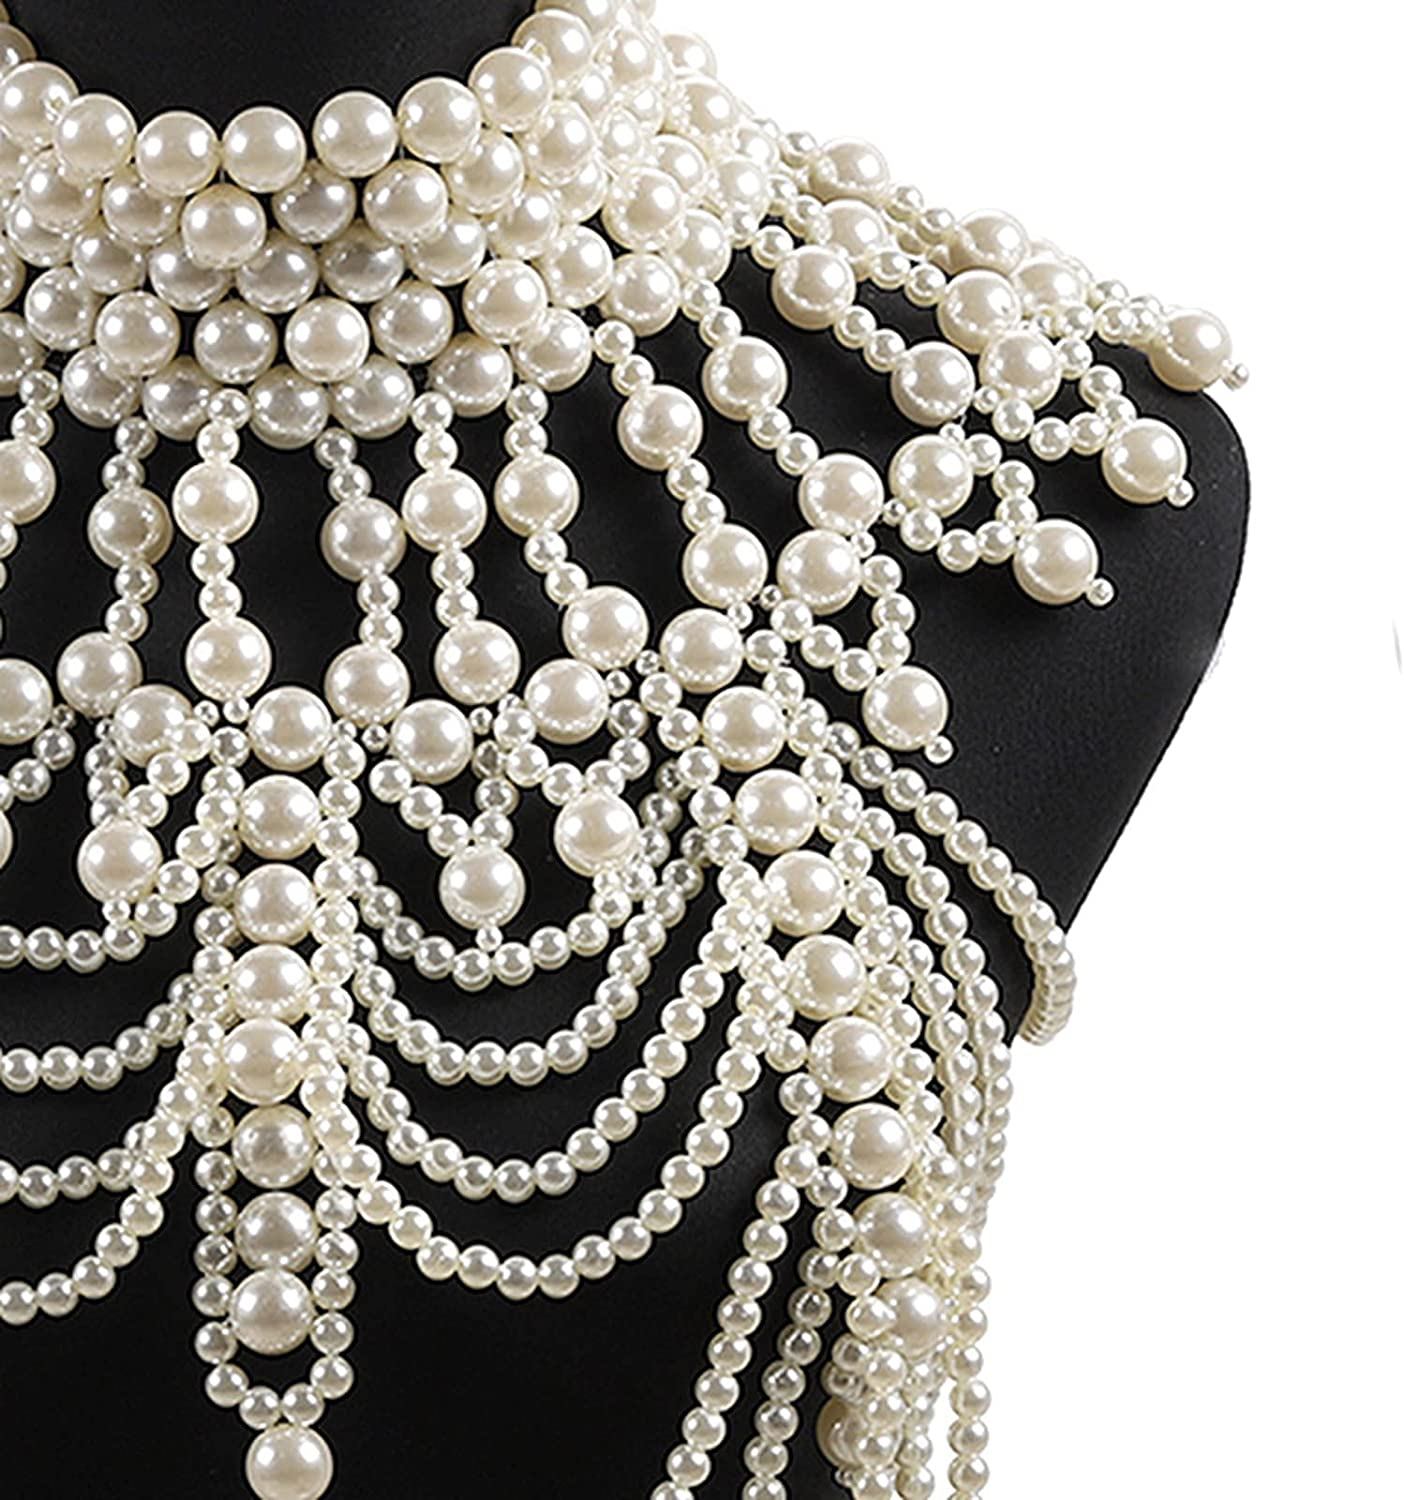 HLONGG Pearl Necklace Choker Shoulder Chains, Shoulder Body Chain Harness Pearl Beaded Tassel Necklace Collar Body Chain Long Necklace Necklace Costume Jewelry,White